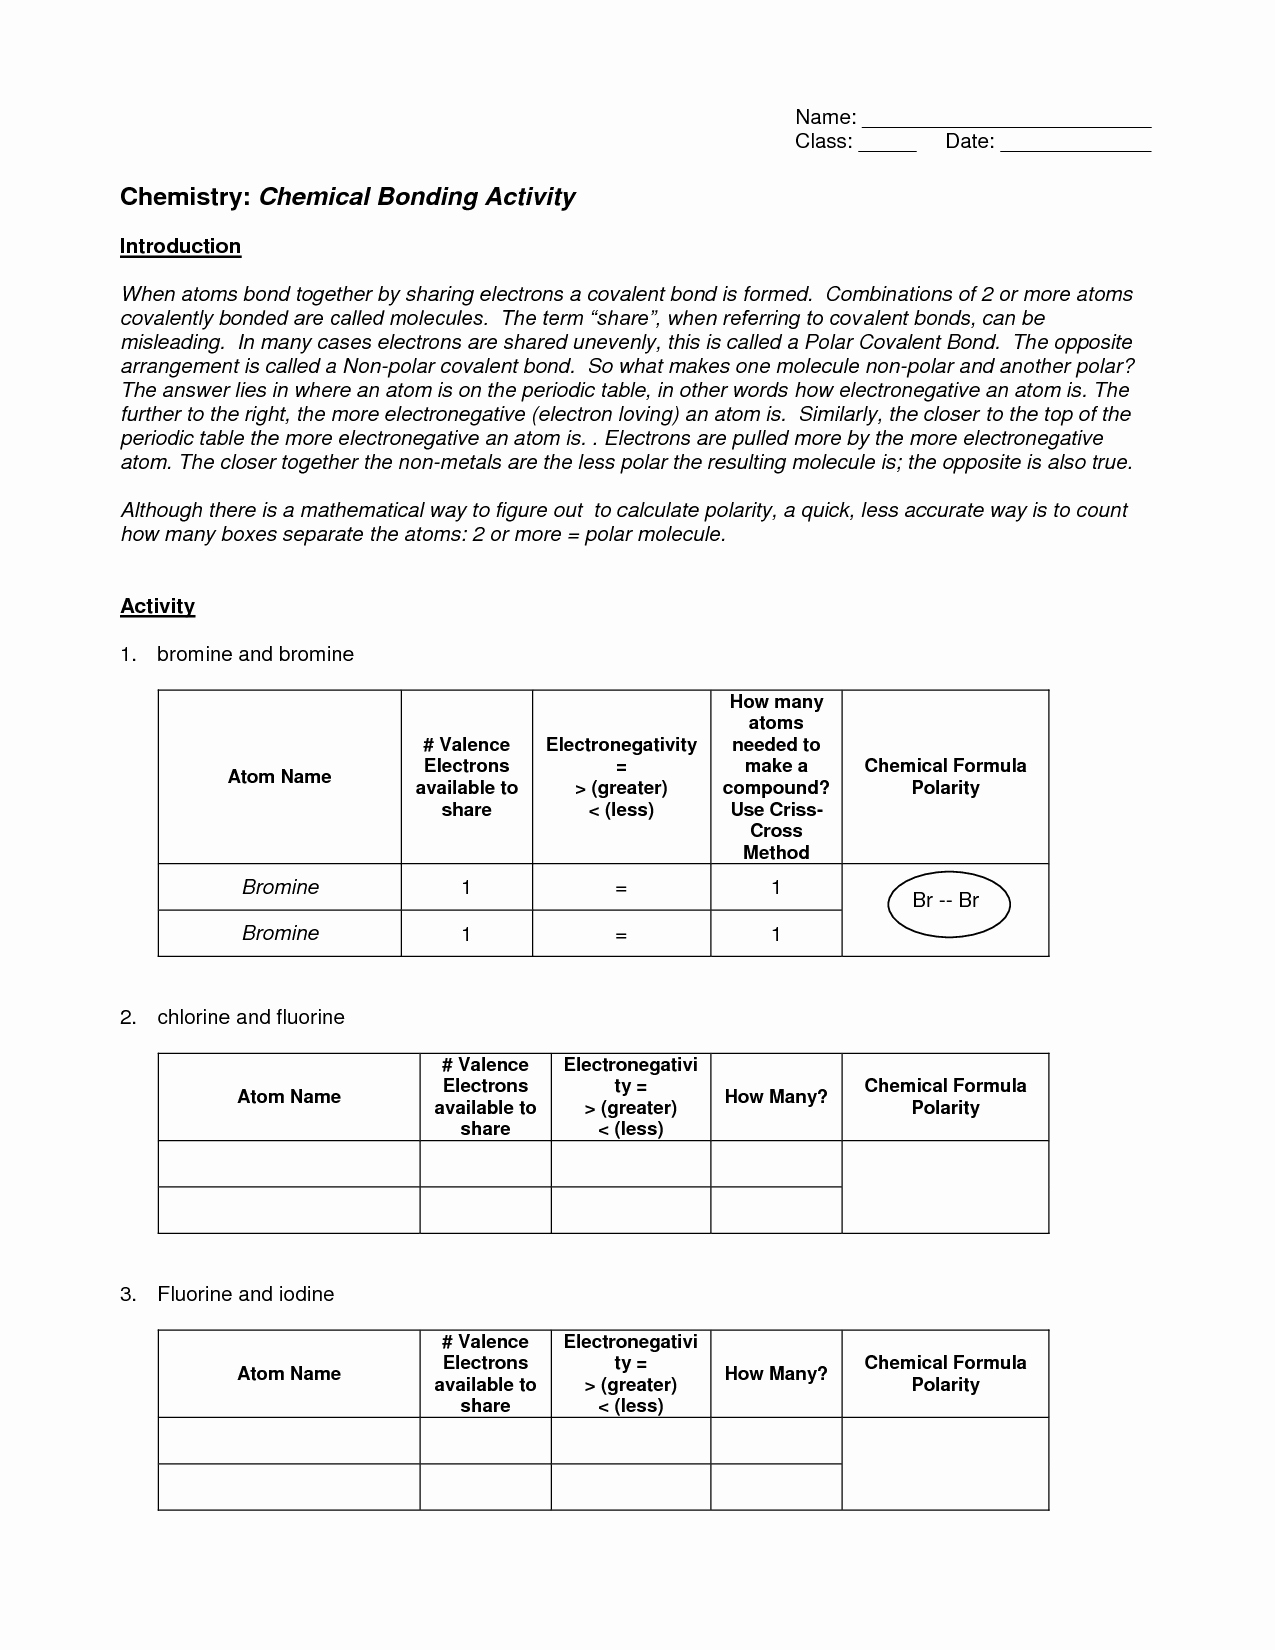 Ionic Bonds Worksheet Answers Inspirational 11 Best Of Bonding Basics Ionic Bonds Worksheet